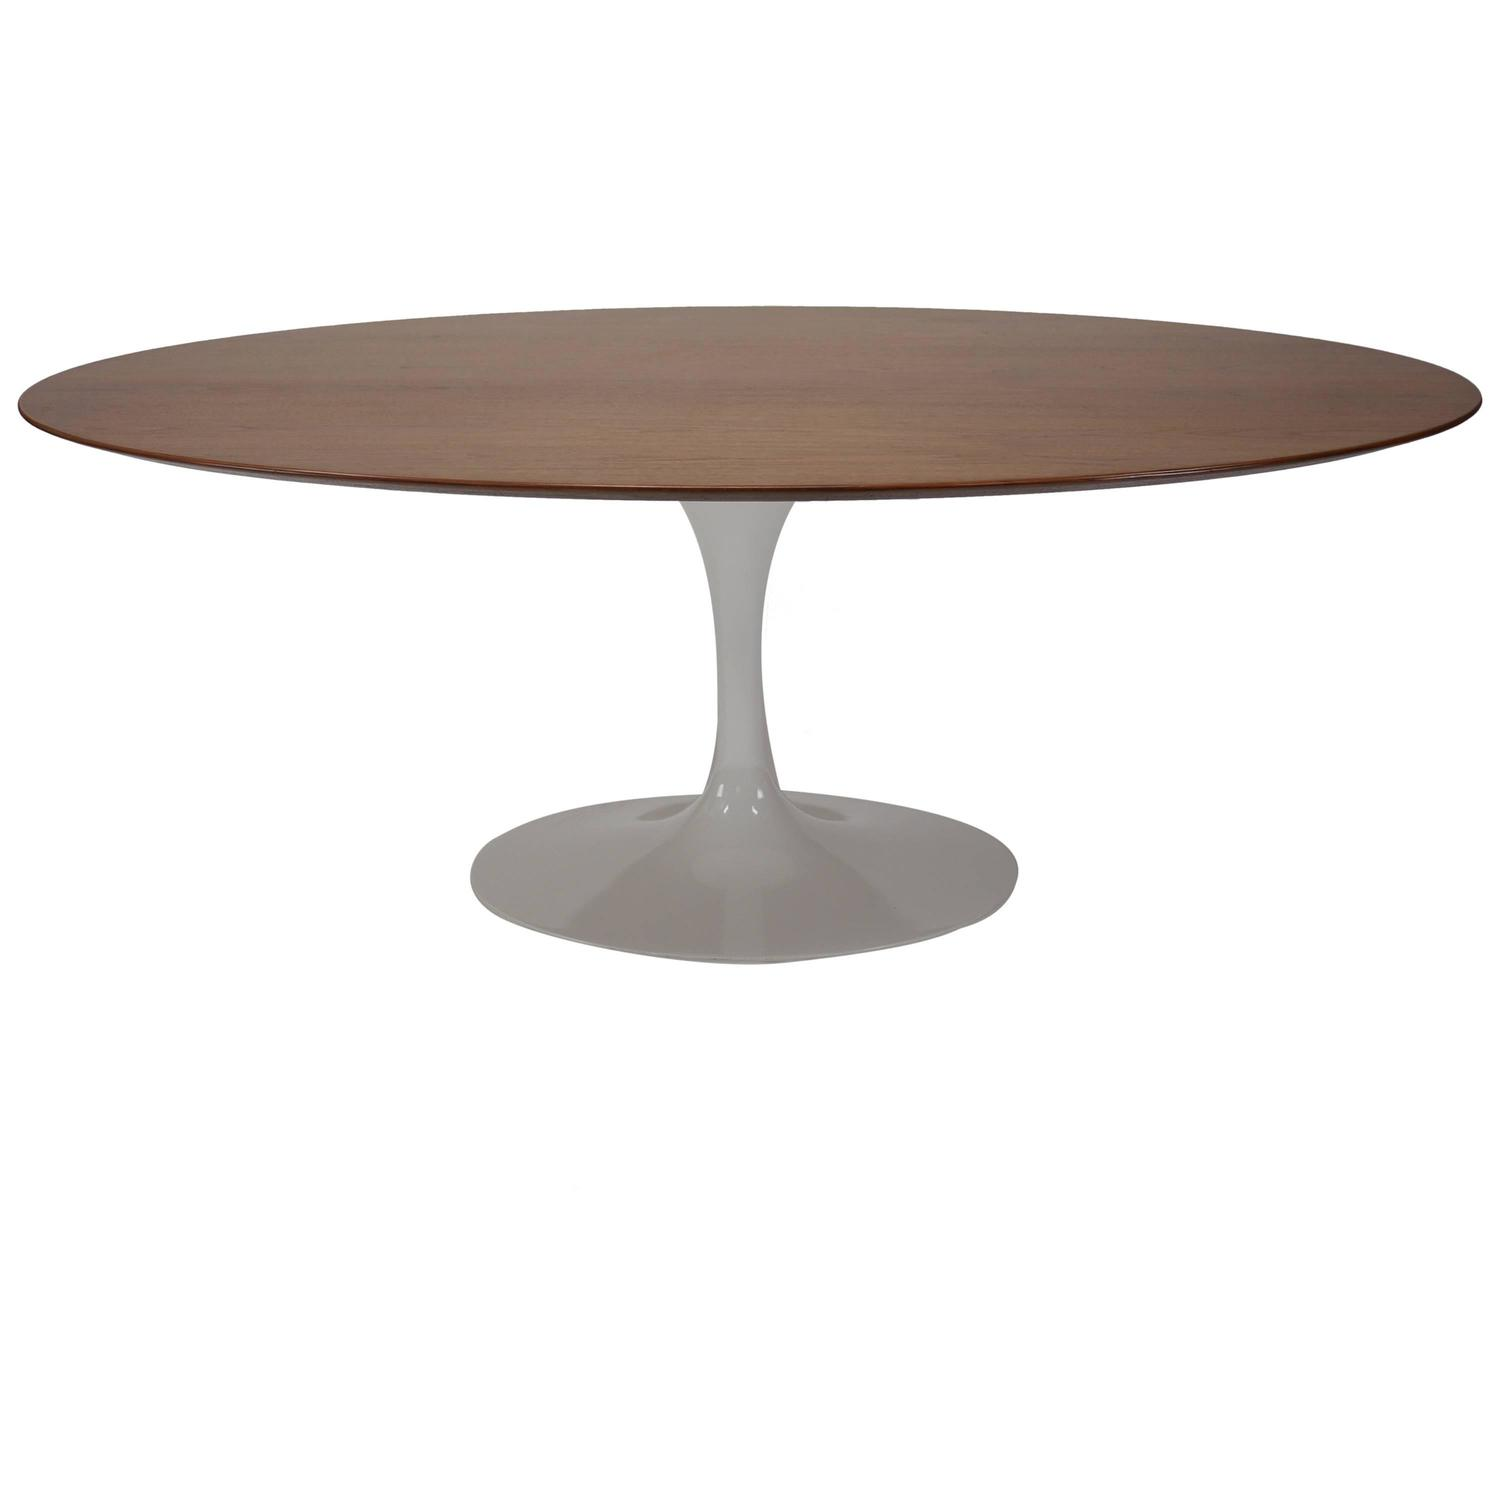 Oval tulip dining table by eero saarinen for knoll at 1stdibs for Tulip dining table